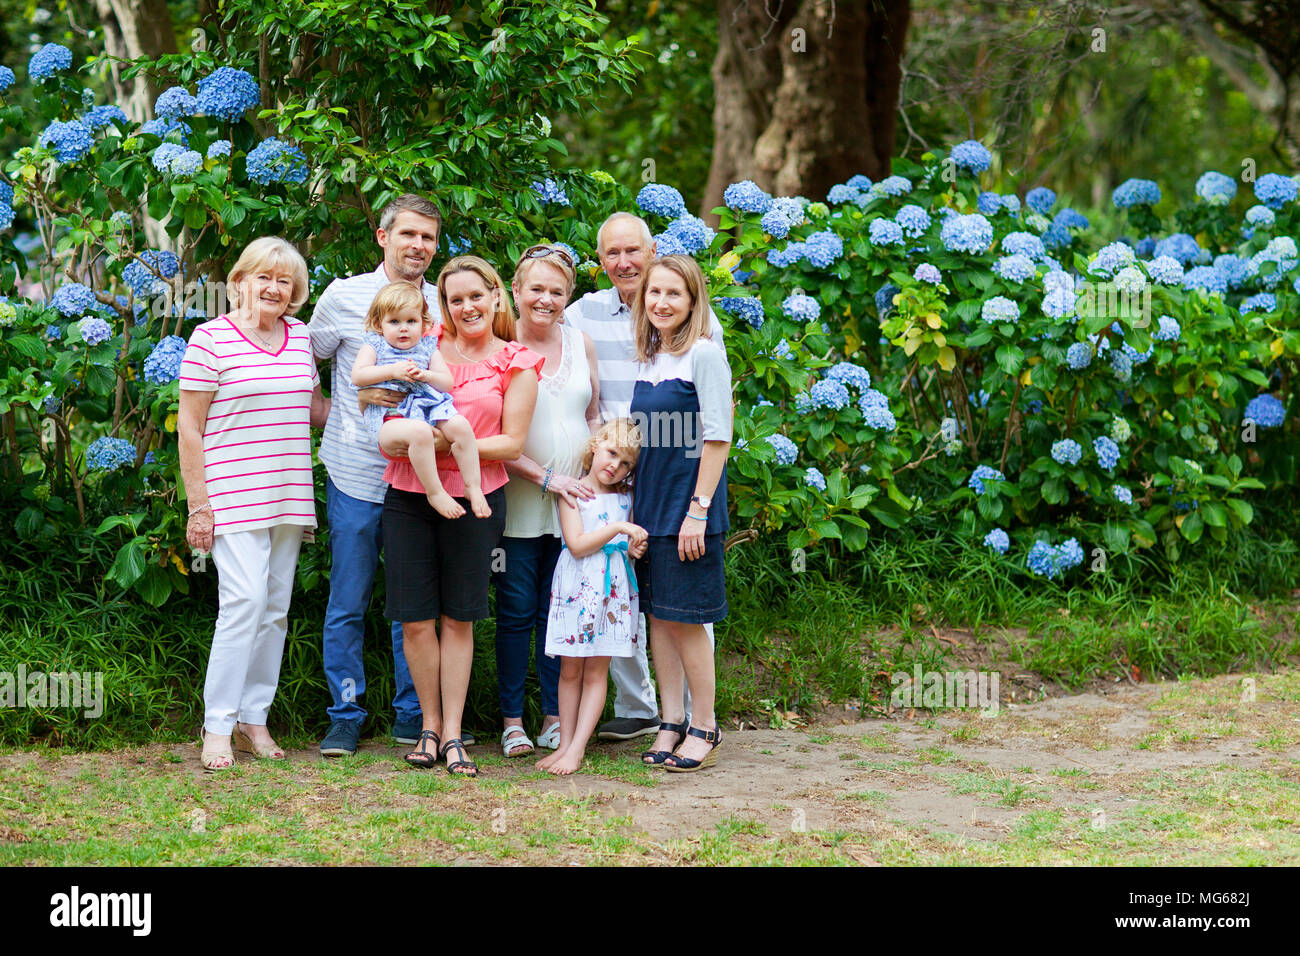 Family portrait of three generations in Arderne Gardens - Stock Image